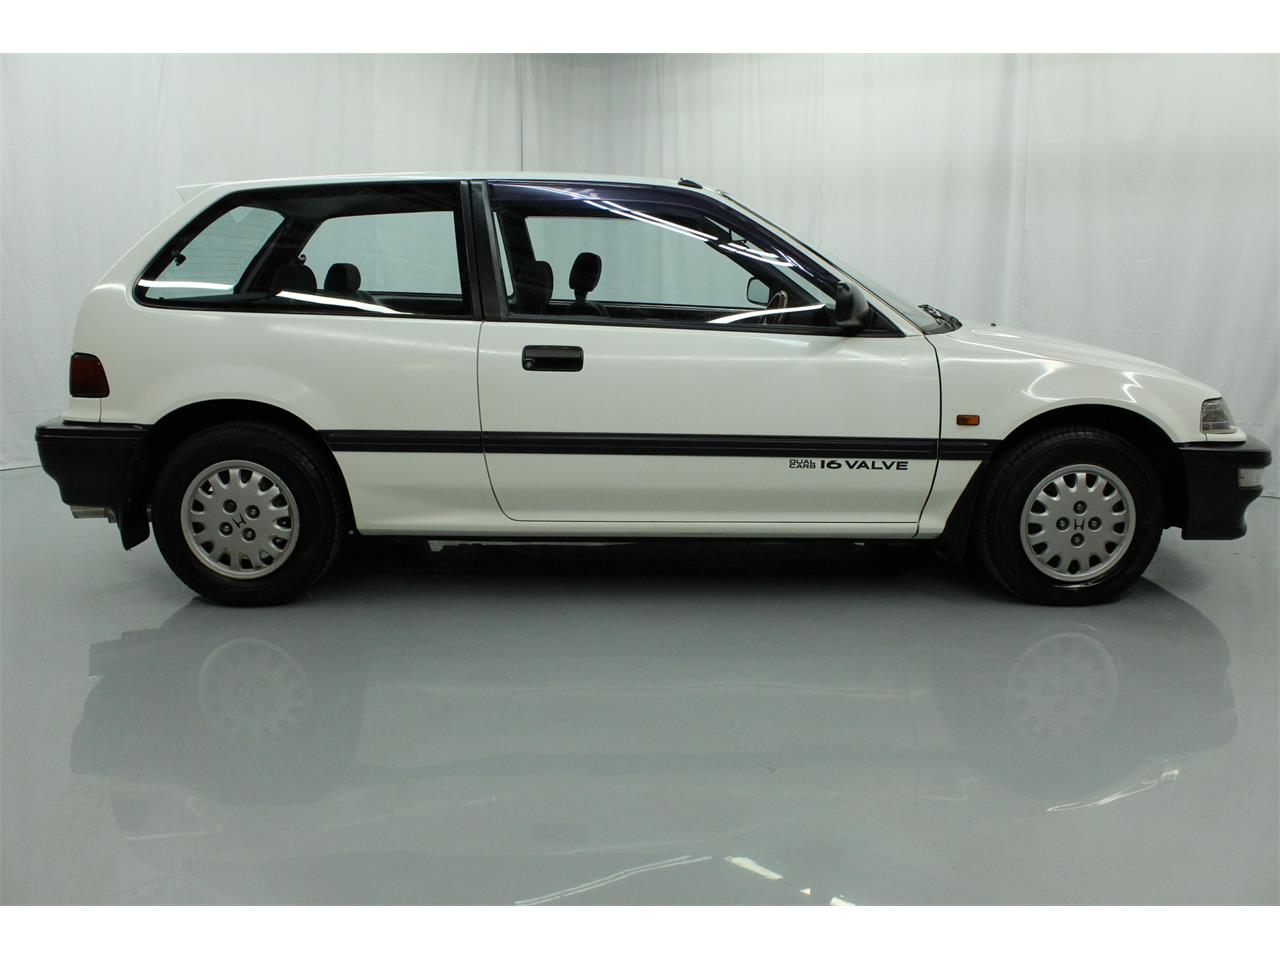 Large Picture of 1990 Civic located in Virginia Offered by Duncan Imports & Classic Cars - PPNF